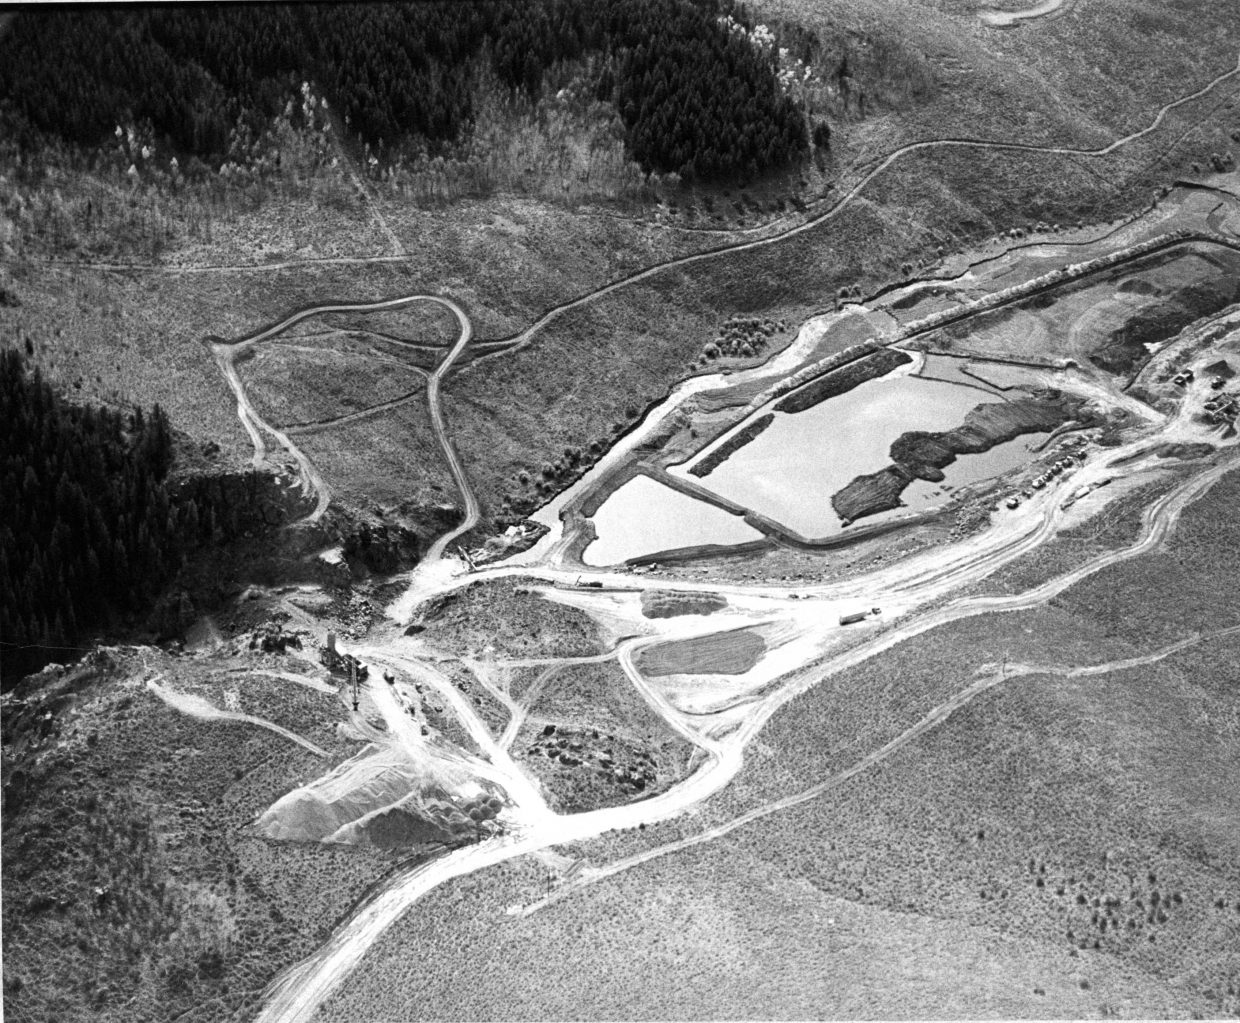 Construction of Stagecoach dam in October 1987.